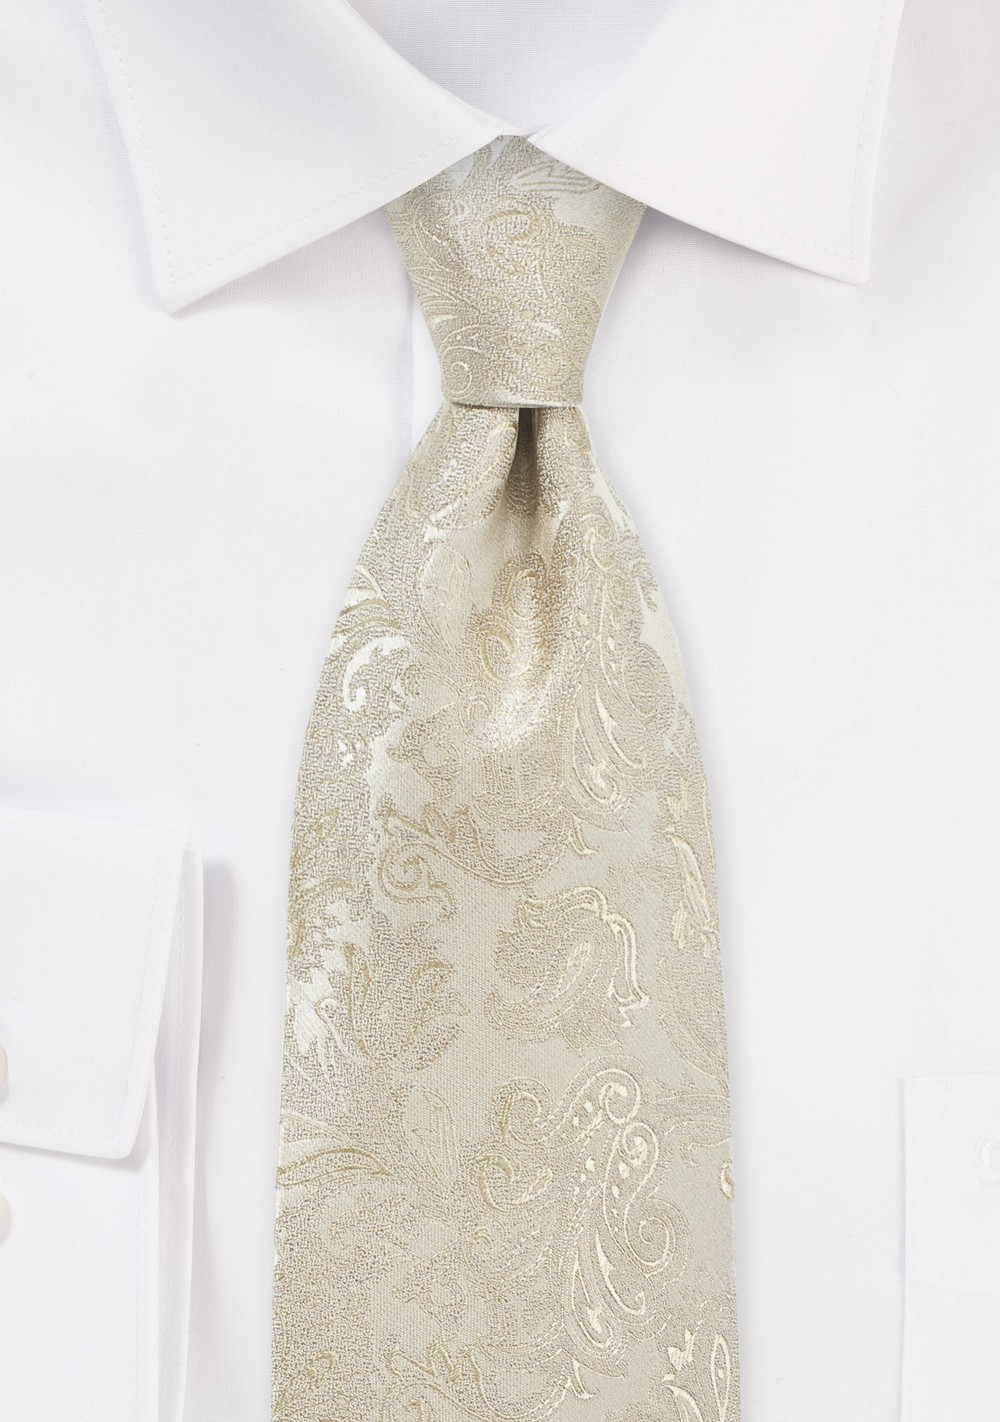 Festive Paisley Tie in Golden Champagne